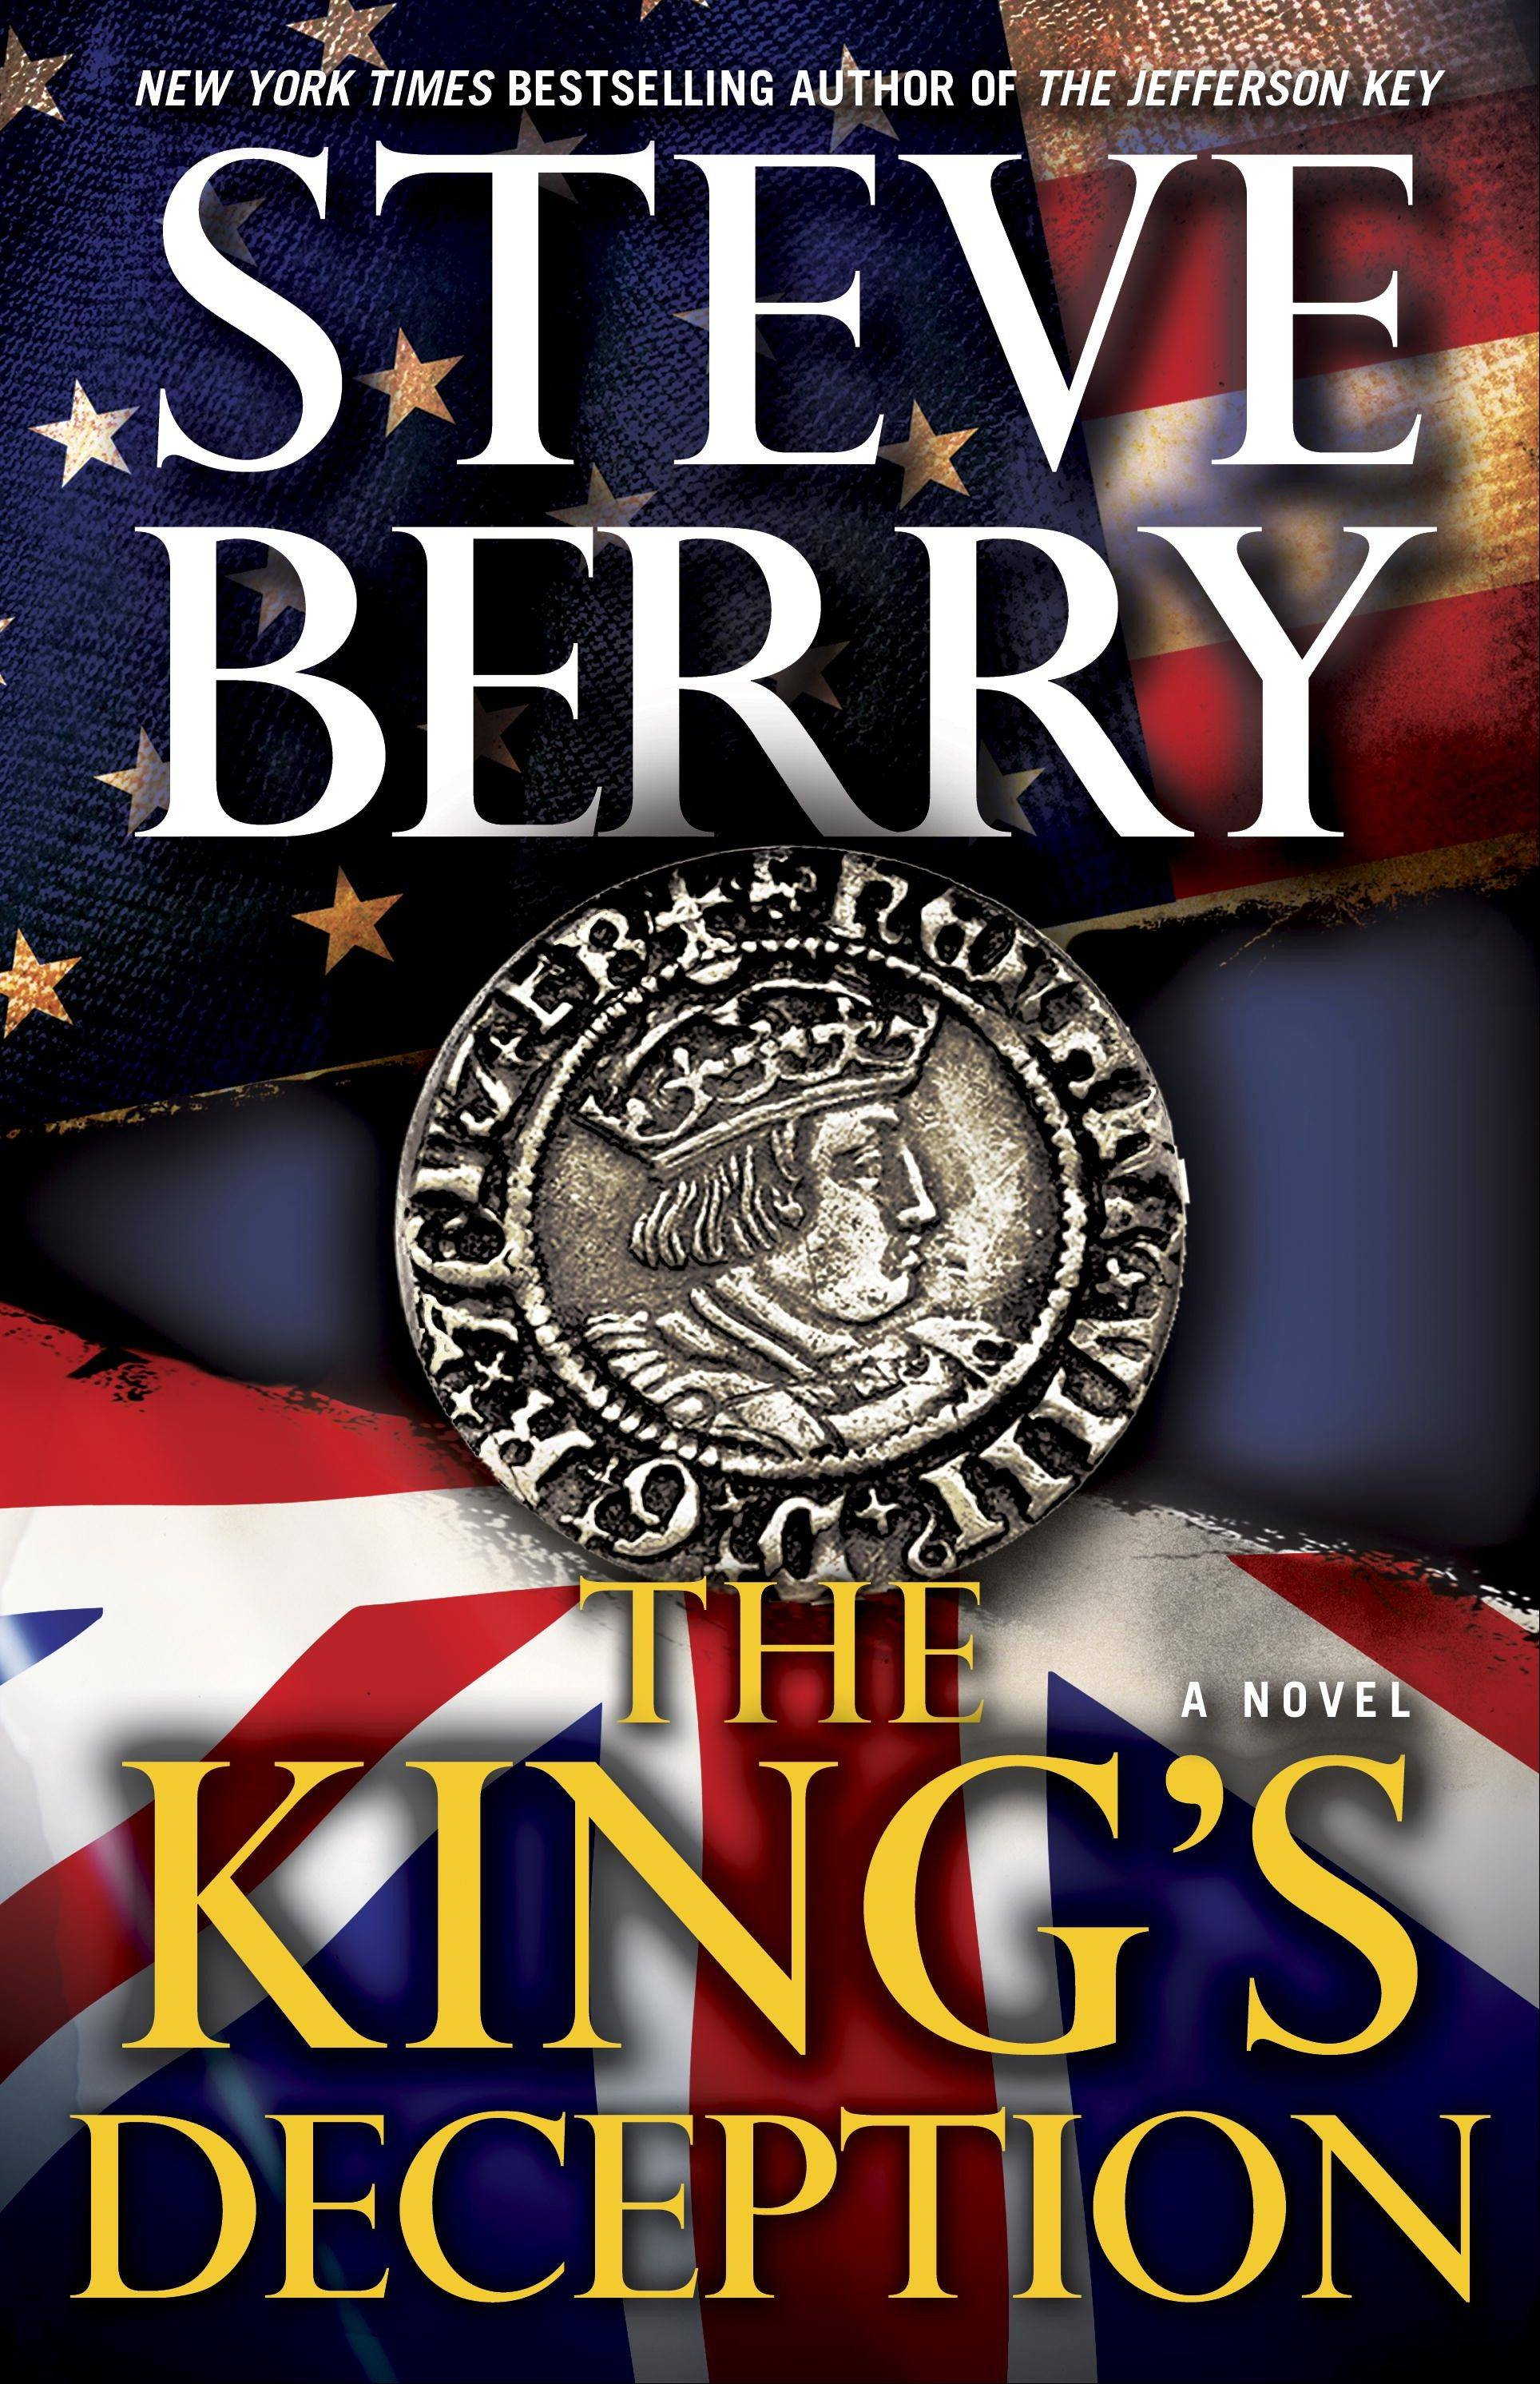 �The King�s Deception� by Steve Berry